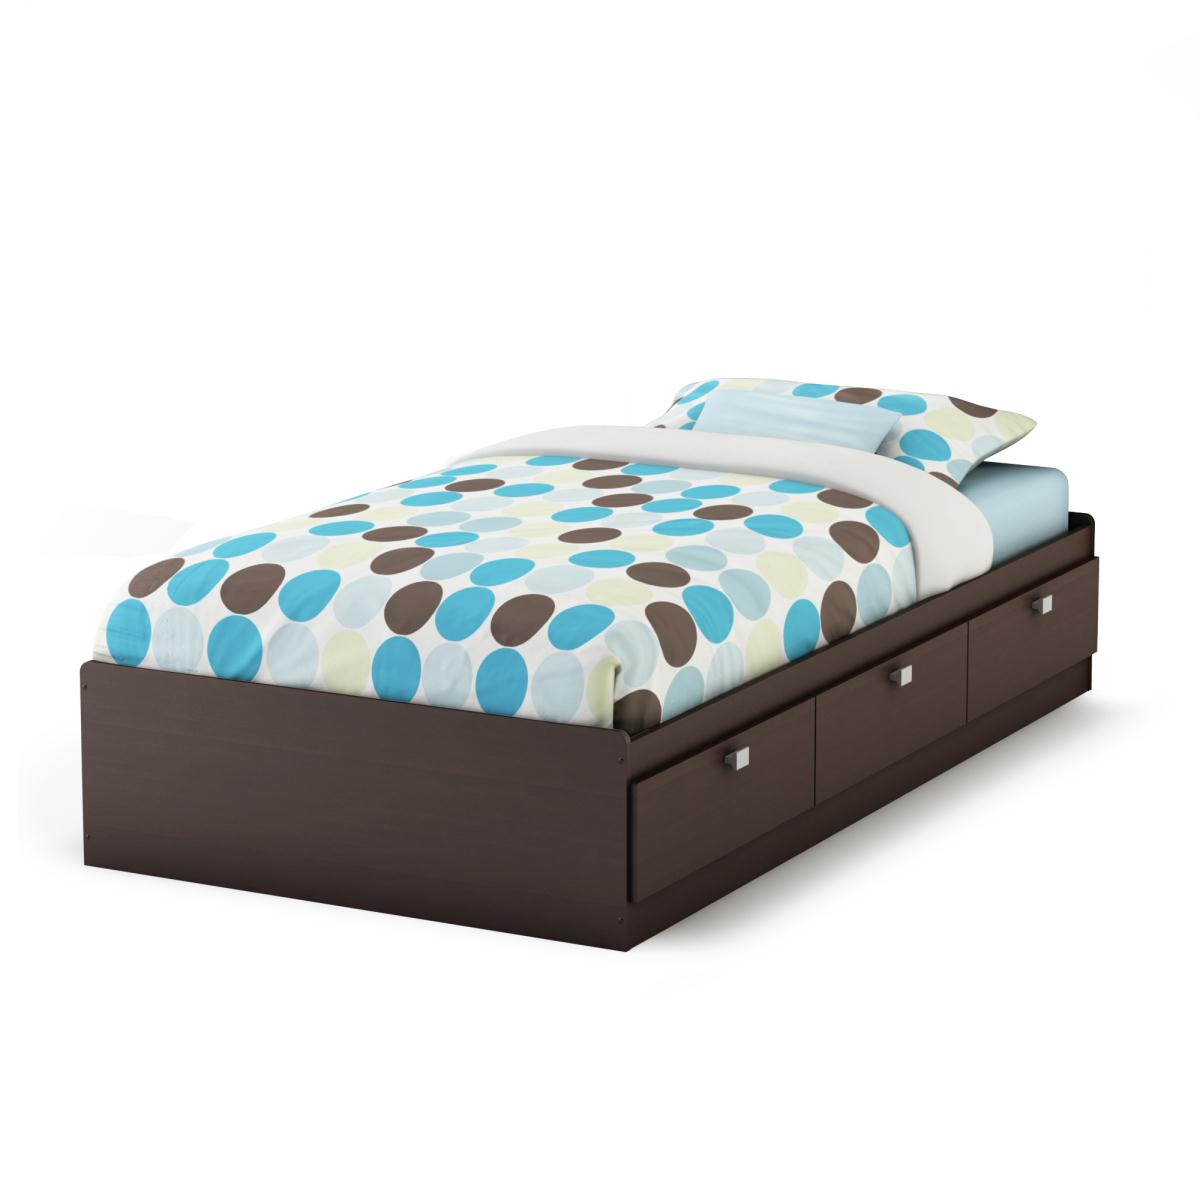 South Shore Cakao Twin Mates Bed - Chocolate